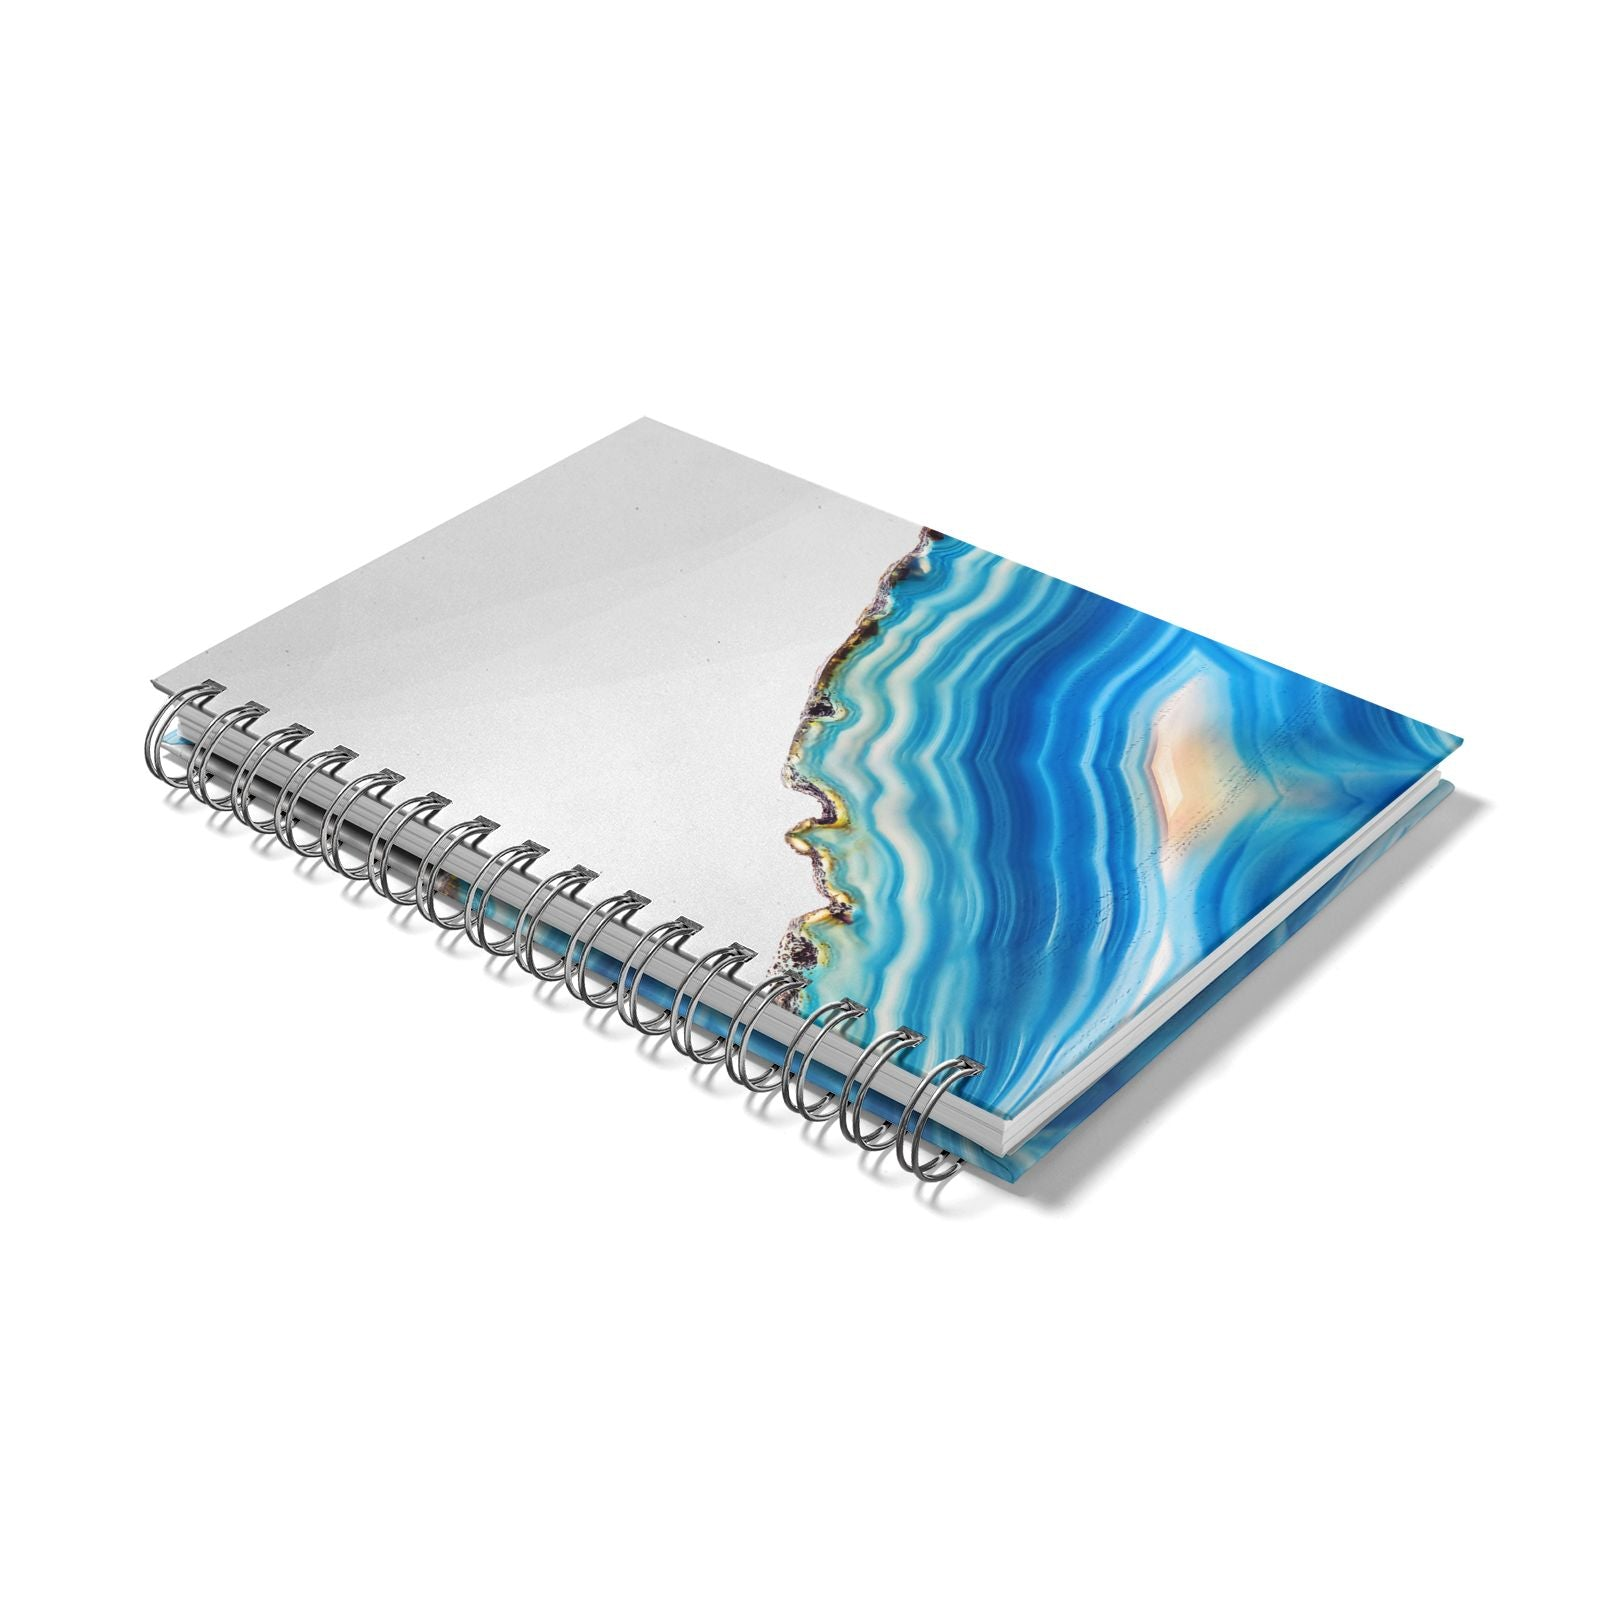 Agate Pale Blue and Bright Blue Notebook with Silver Coil Laid Flat